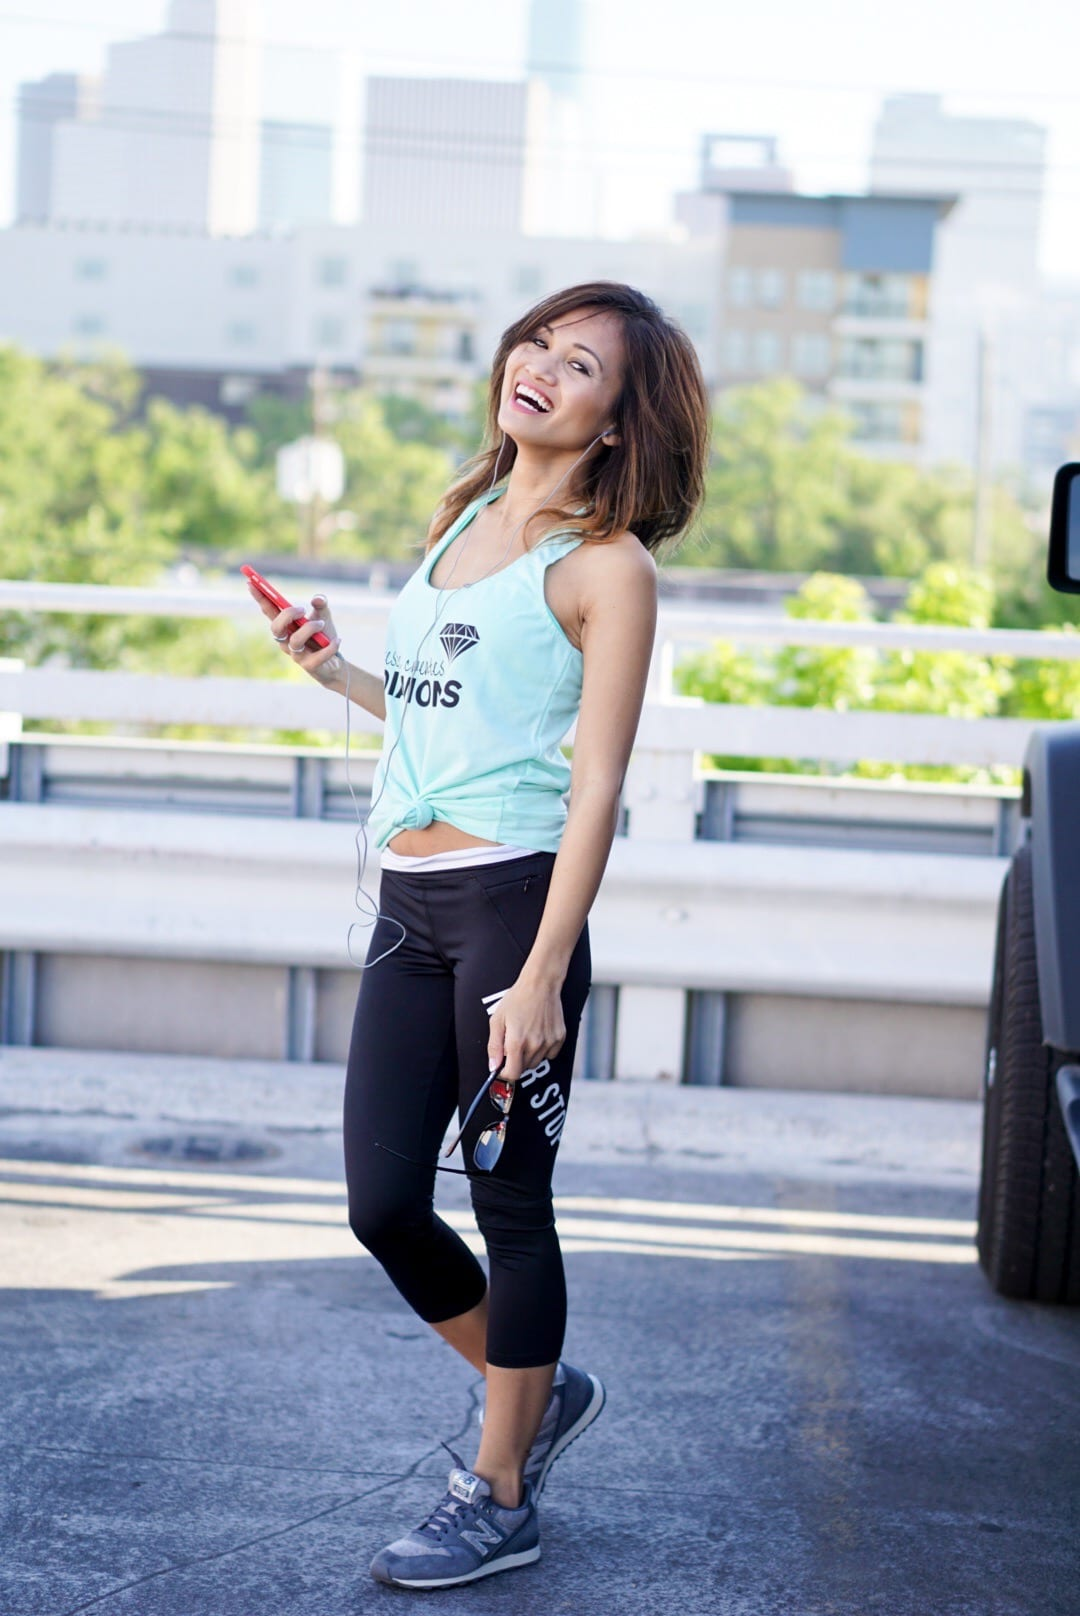 8 Daily Activities You Can Do to Stay Fit Without Having to Go the Gym